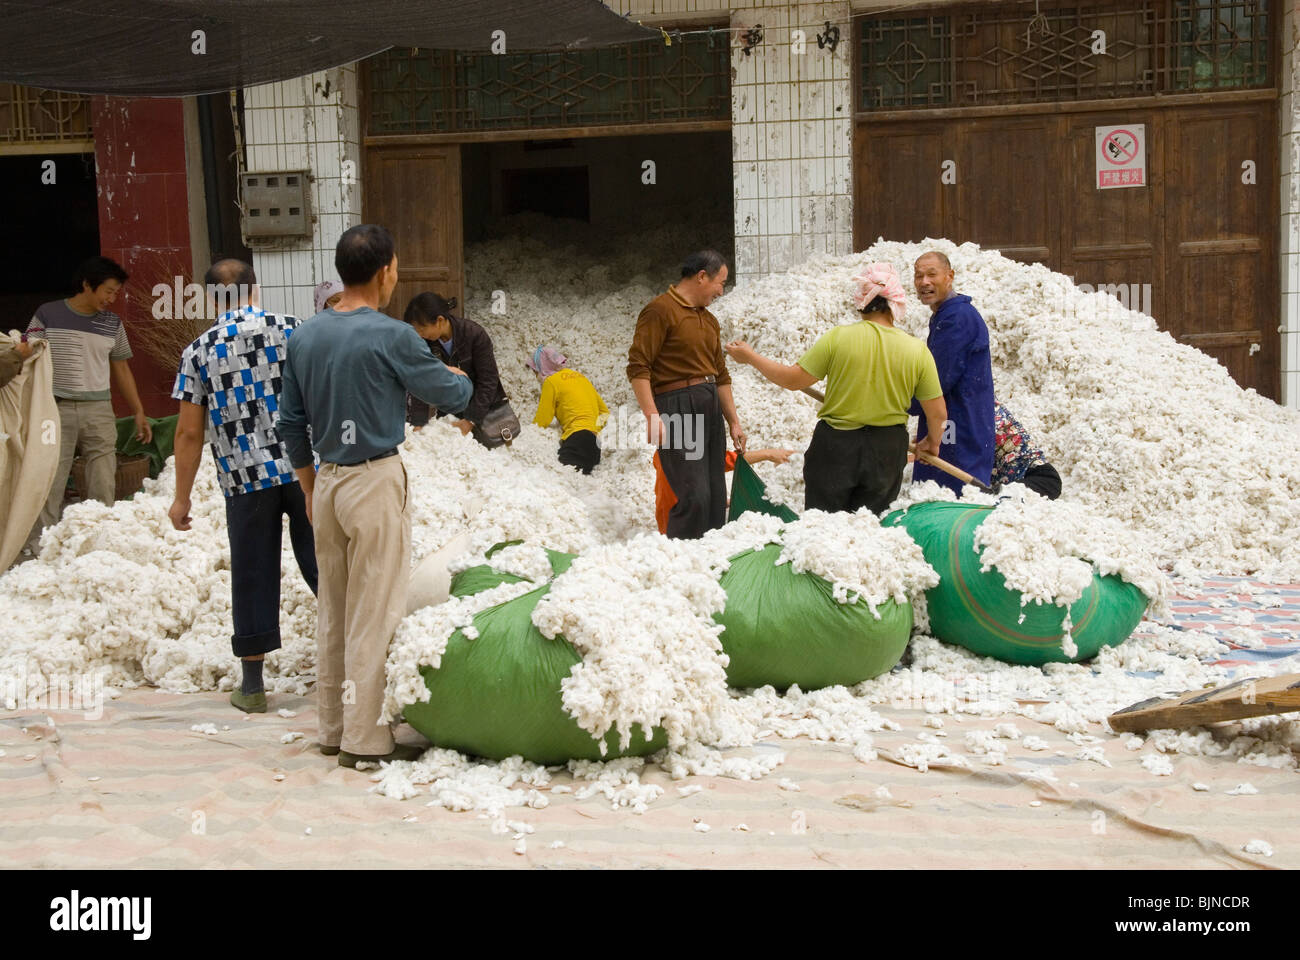 Workers gathering cotton bolls in Hubei province. China. - Stock Image